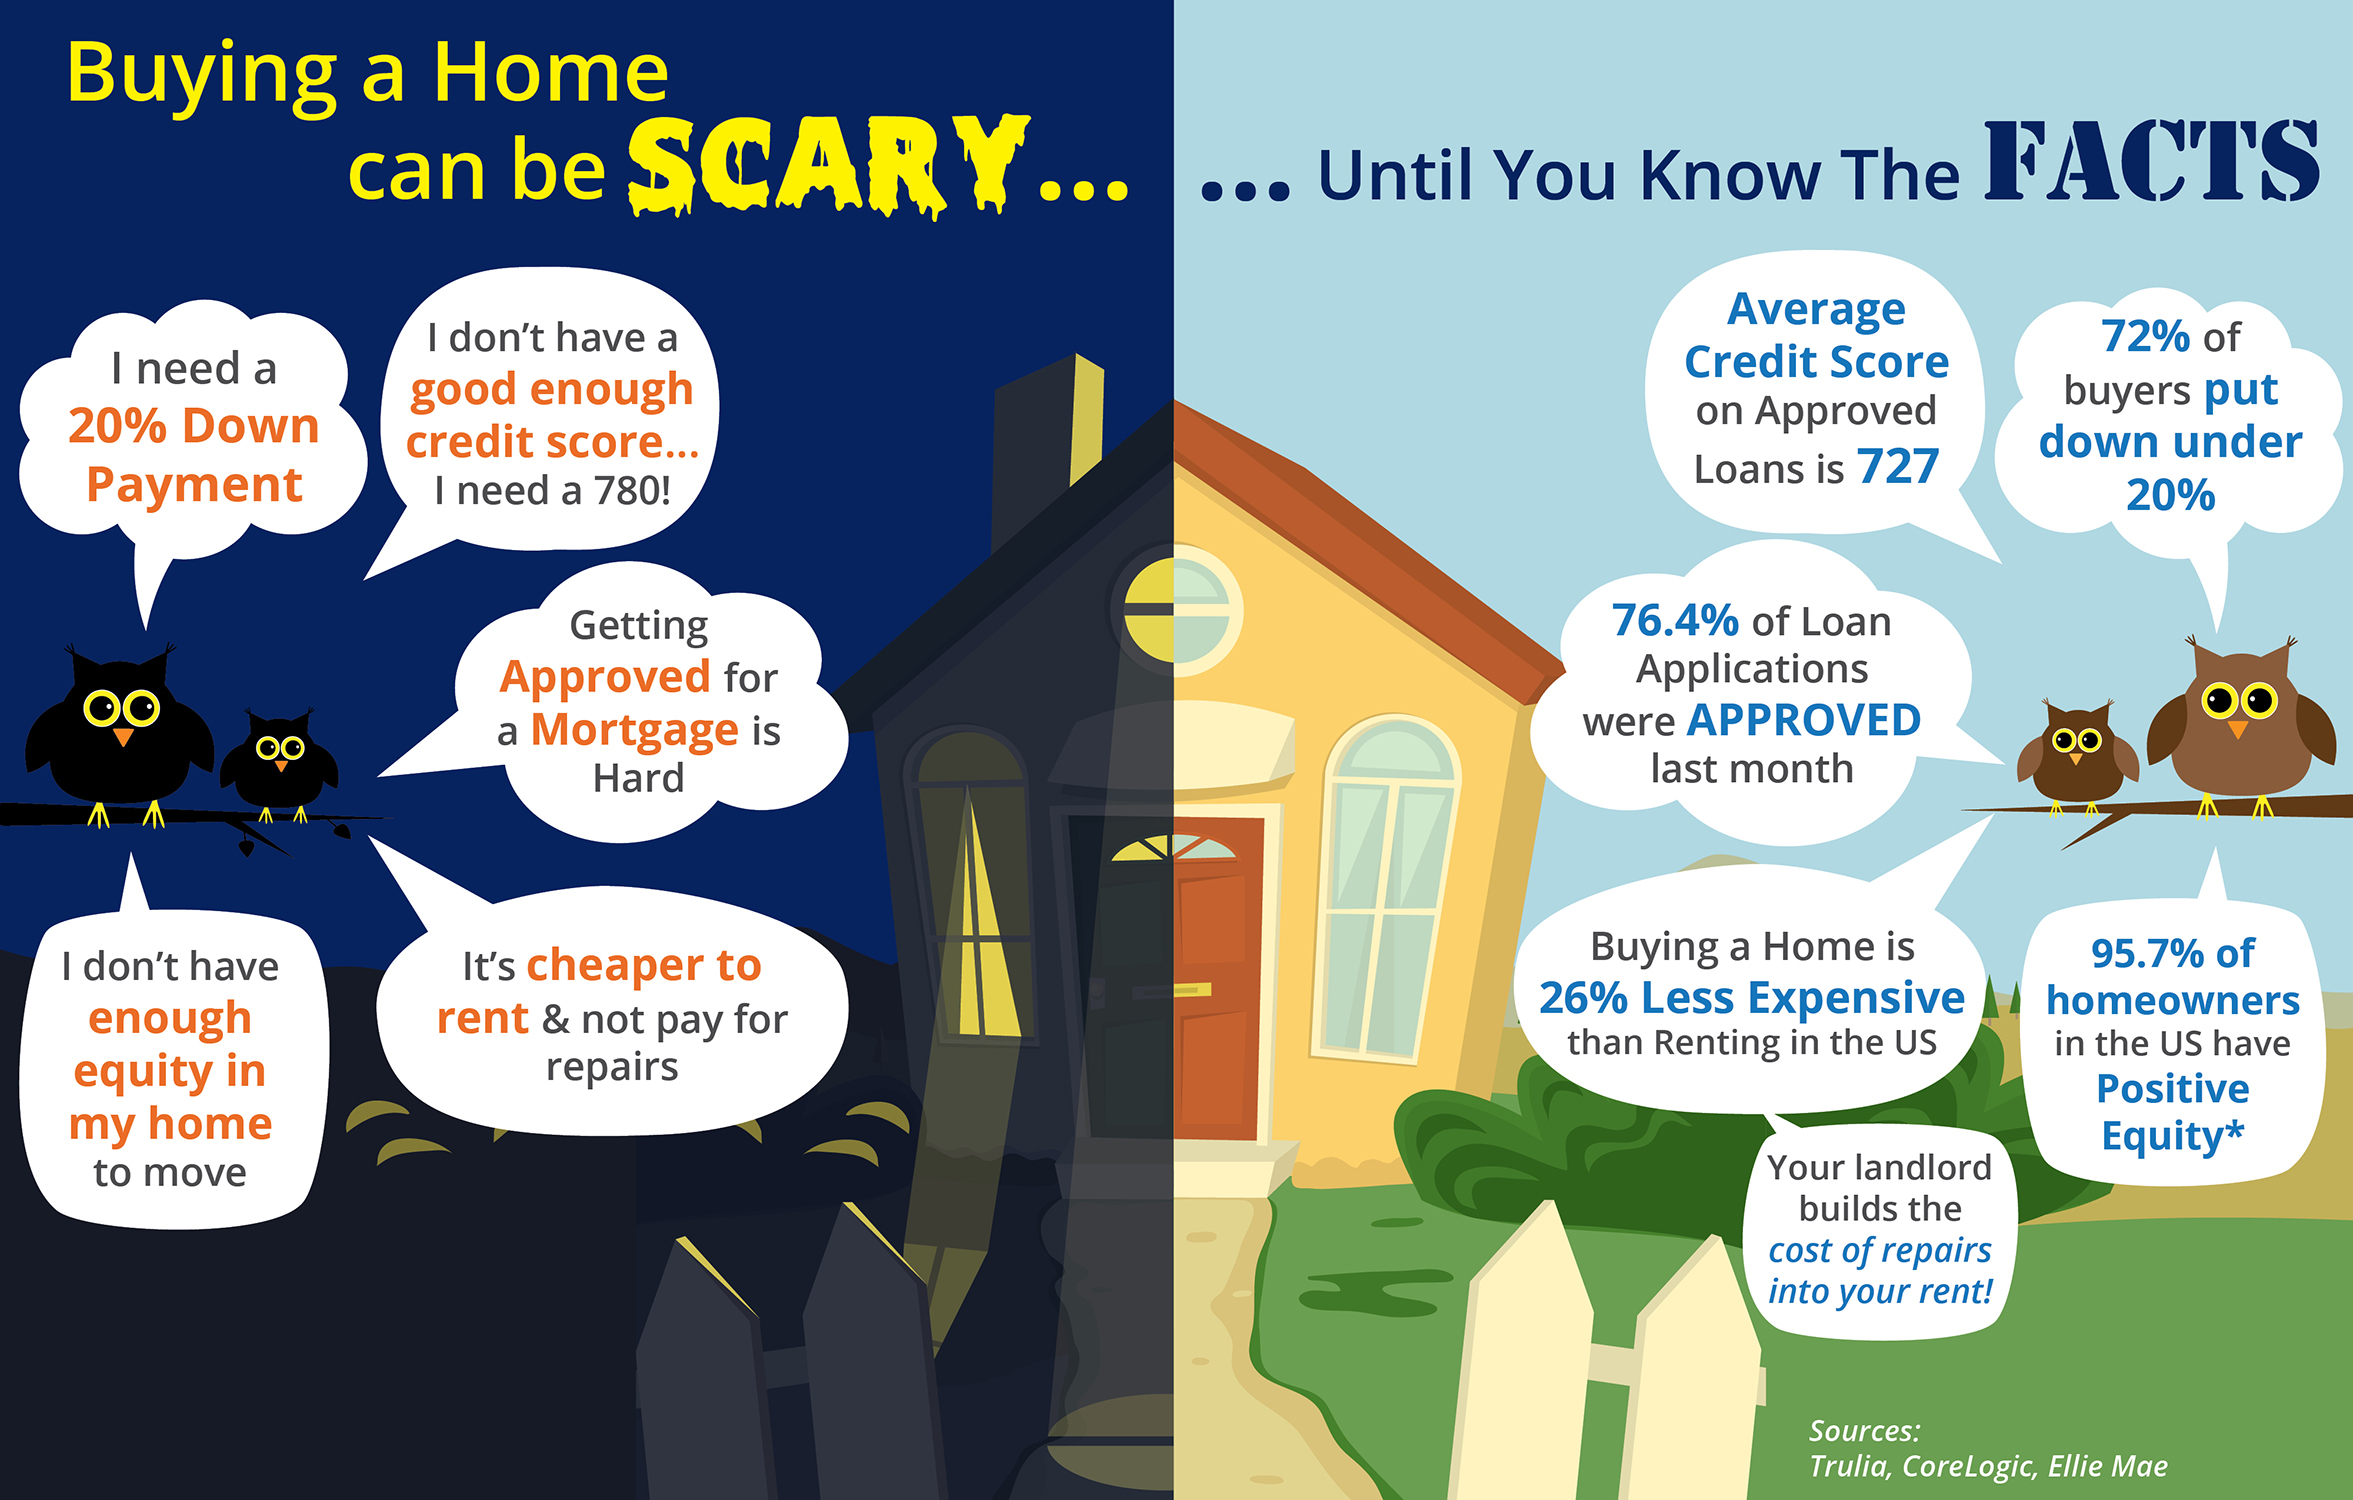 Buying your Home Can Be Scary... Until You Know the Facts